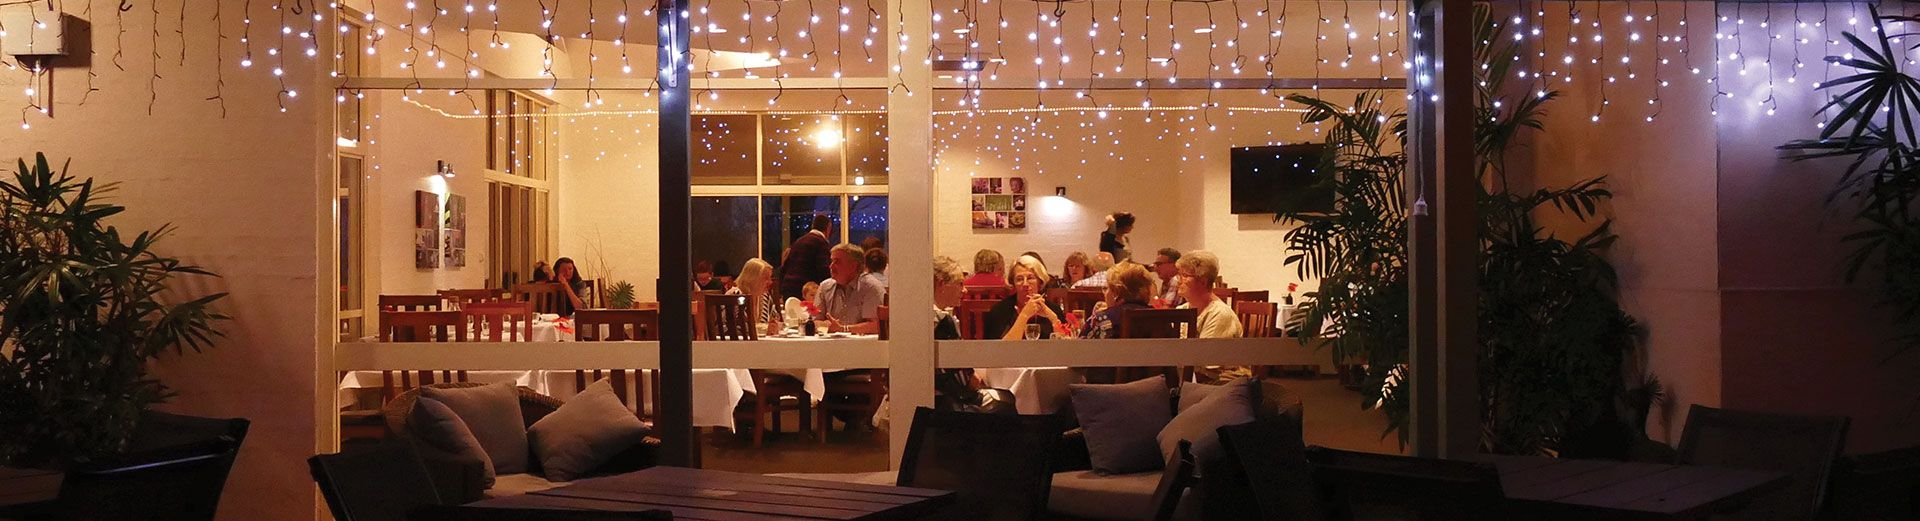 Dinner at The Terrace Restaurant